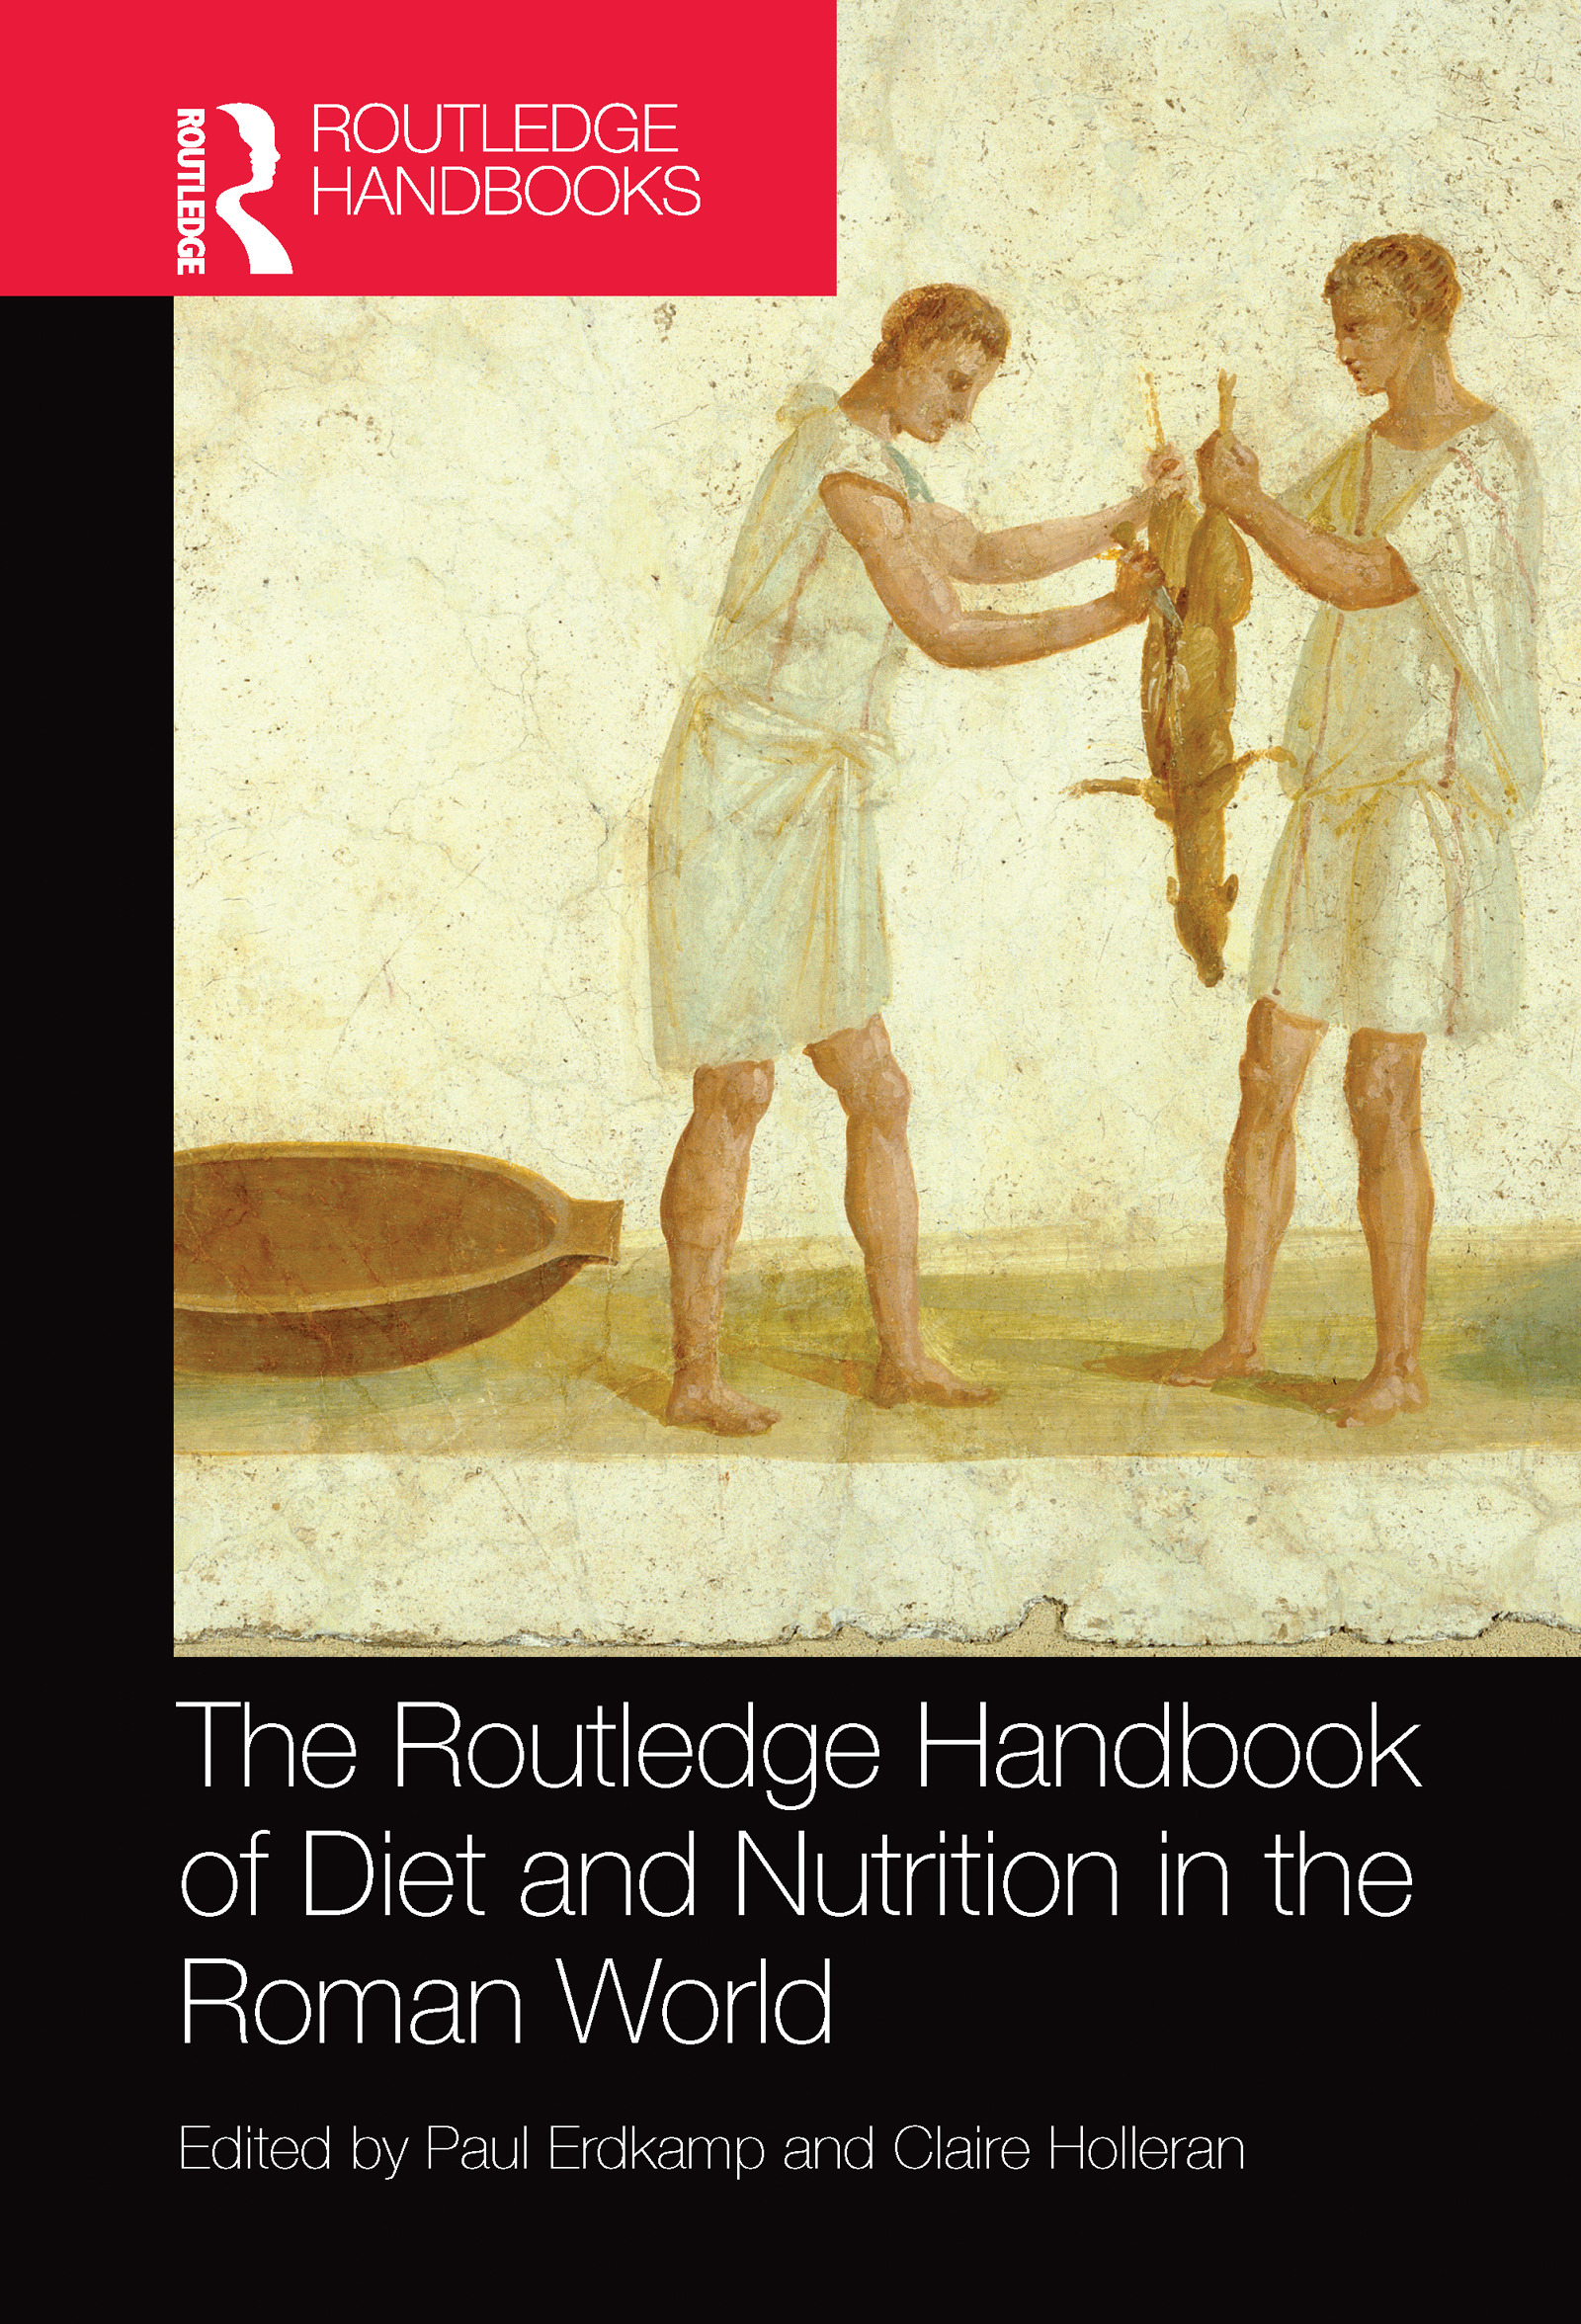 The Routledge Handbook of Diet and Nutrition in the Roman World